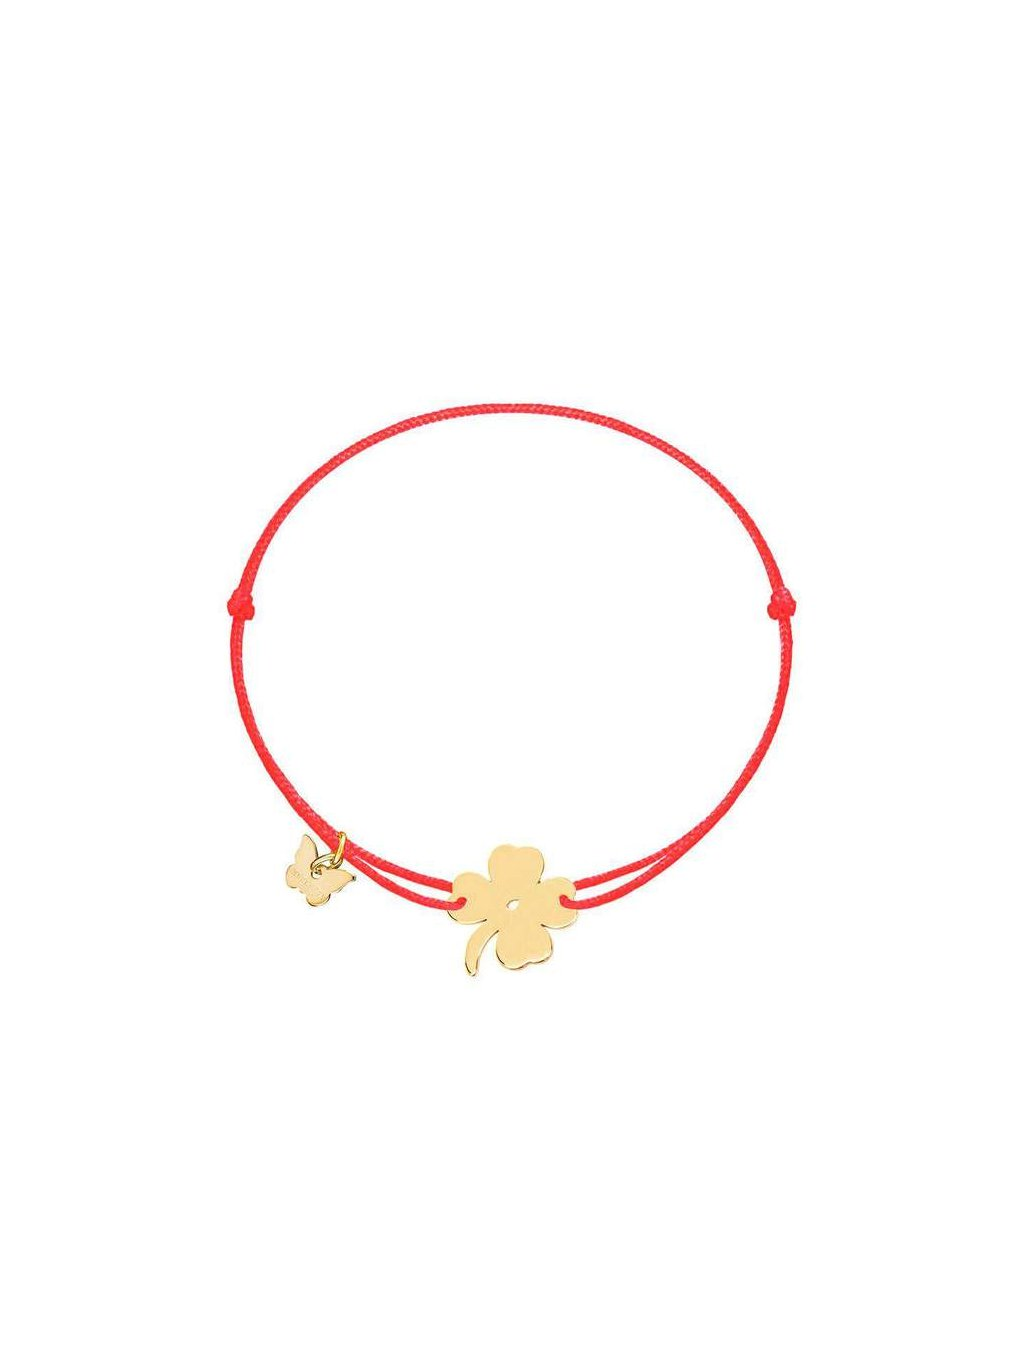 Lucky Clover bracelet yellow gold plated on red 700x